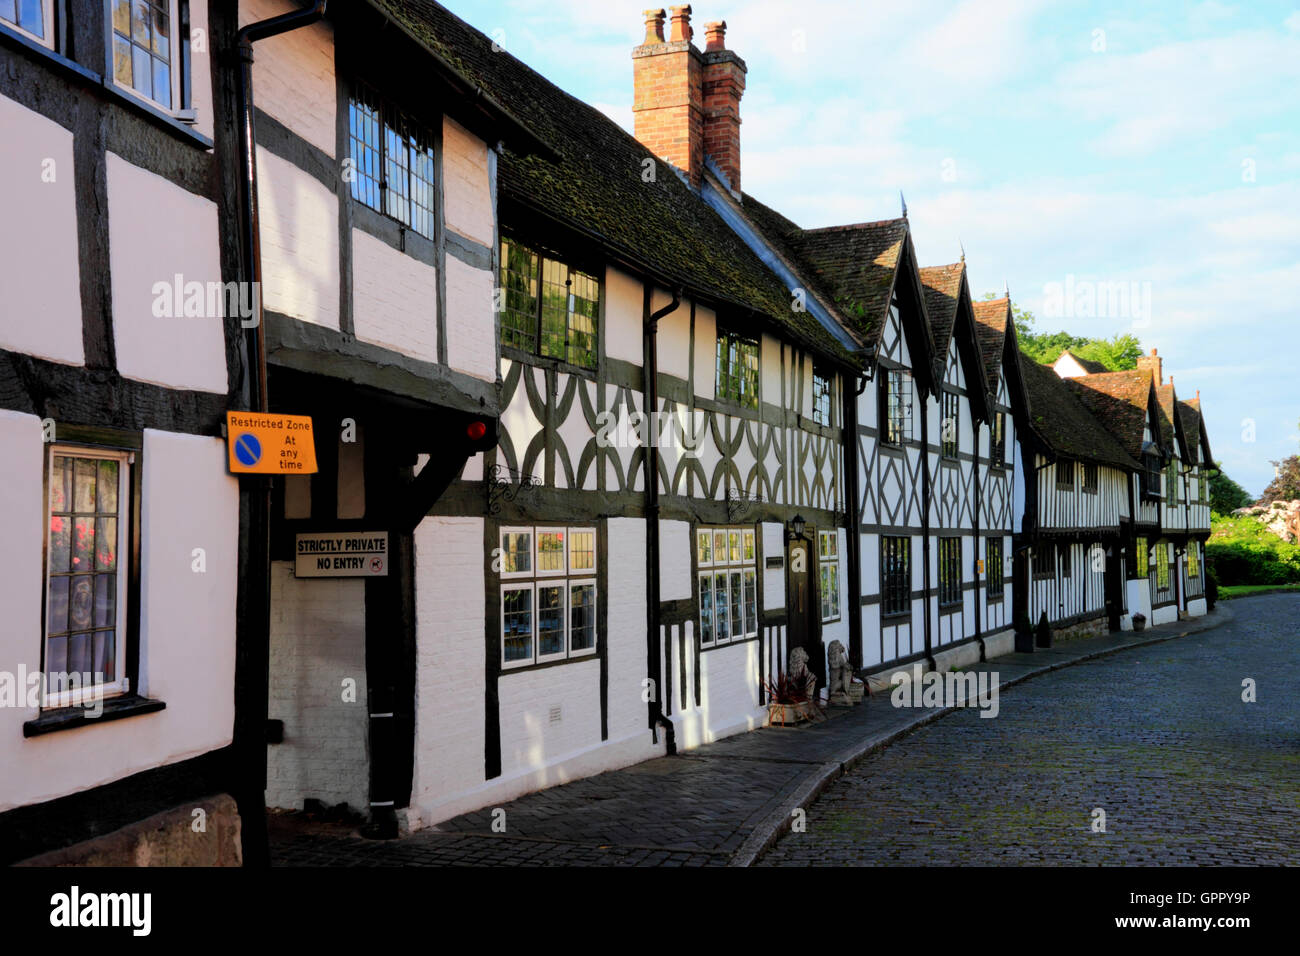 A row of half-timbered cottages in Mill Street, in the shadow of Warwick Castle. - Stock Image